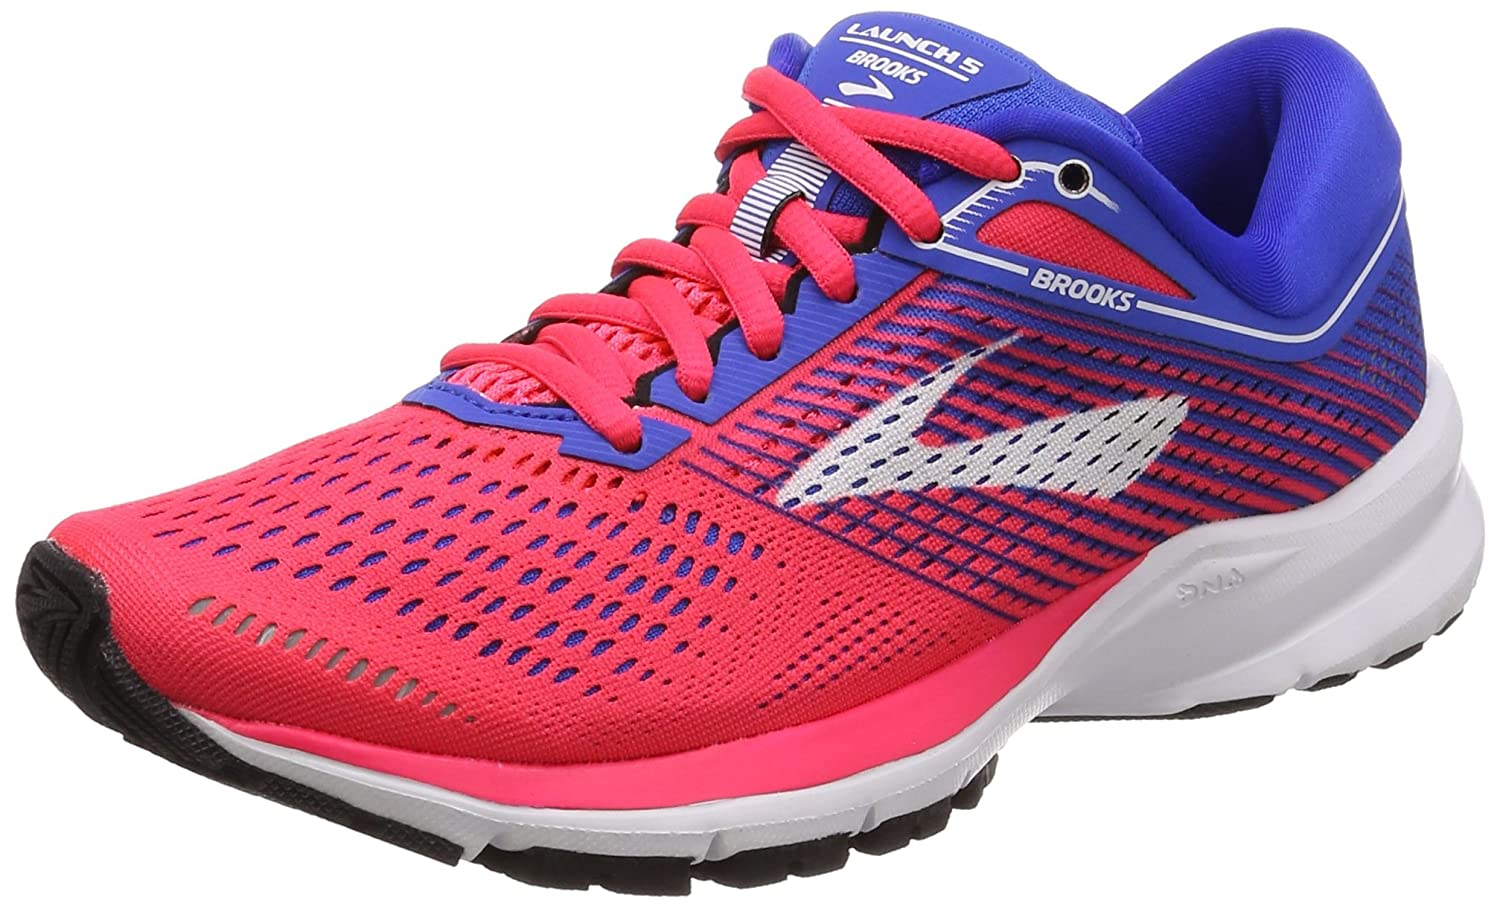 Brooks Womens Launch 5 B071VKHH3V 8 B(M) US|Pink/Blue/White